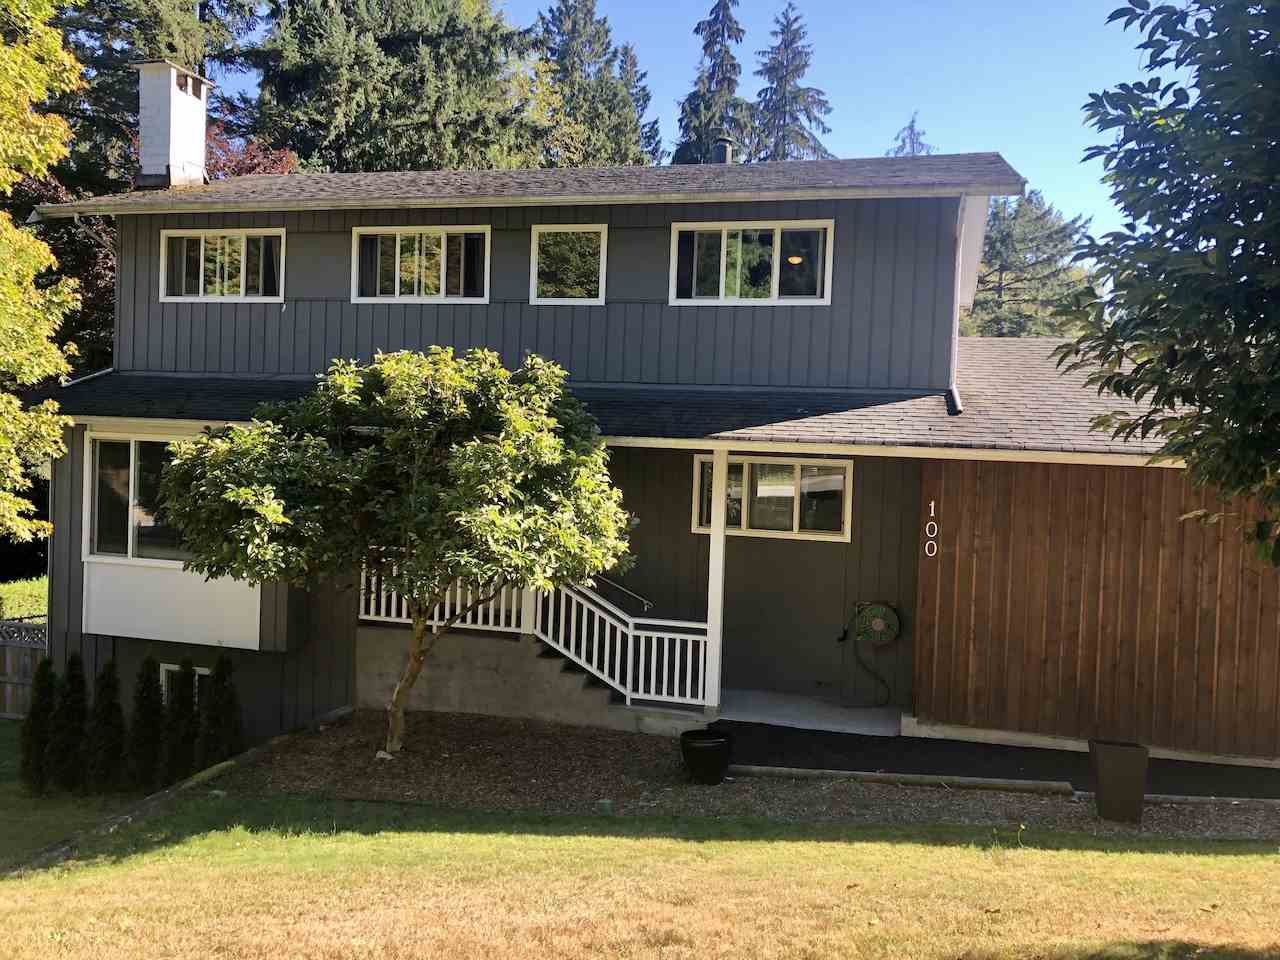 Main Photo: 100 COLLEGE PARK Way in Port Moody: College Park PM House for sale : MLS®# R2498433